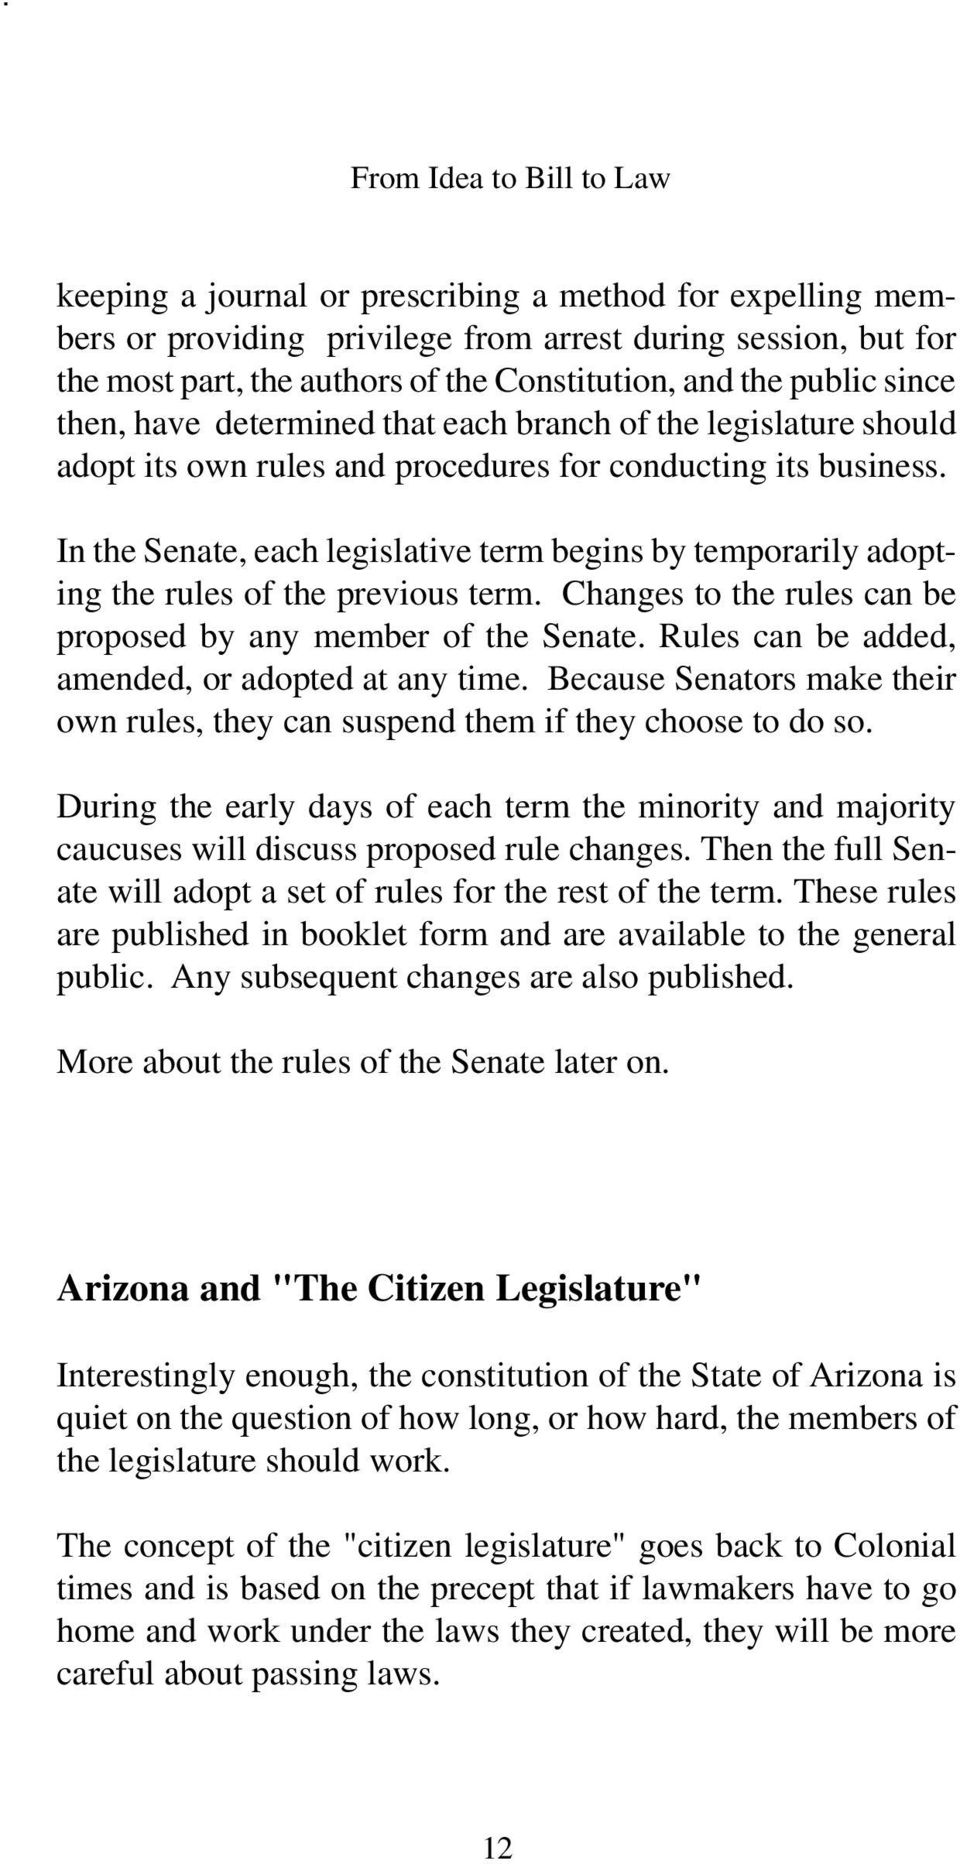 In the Senate, each legislative term begins by temporarily adopting the rules of the previous term. Changes to the rules can be proposed by any member of the Senate.